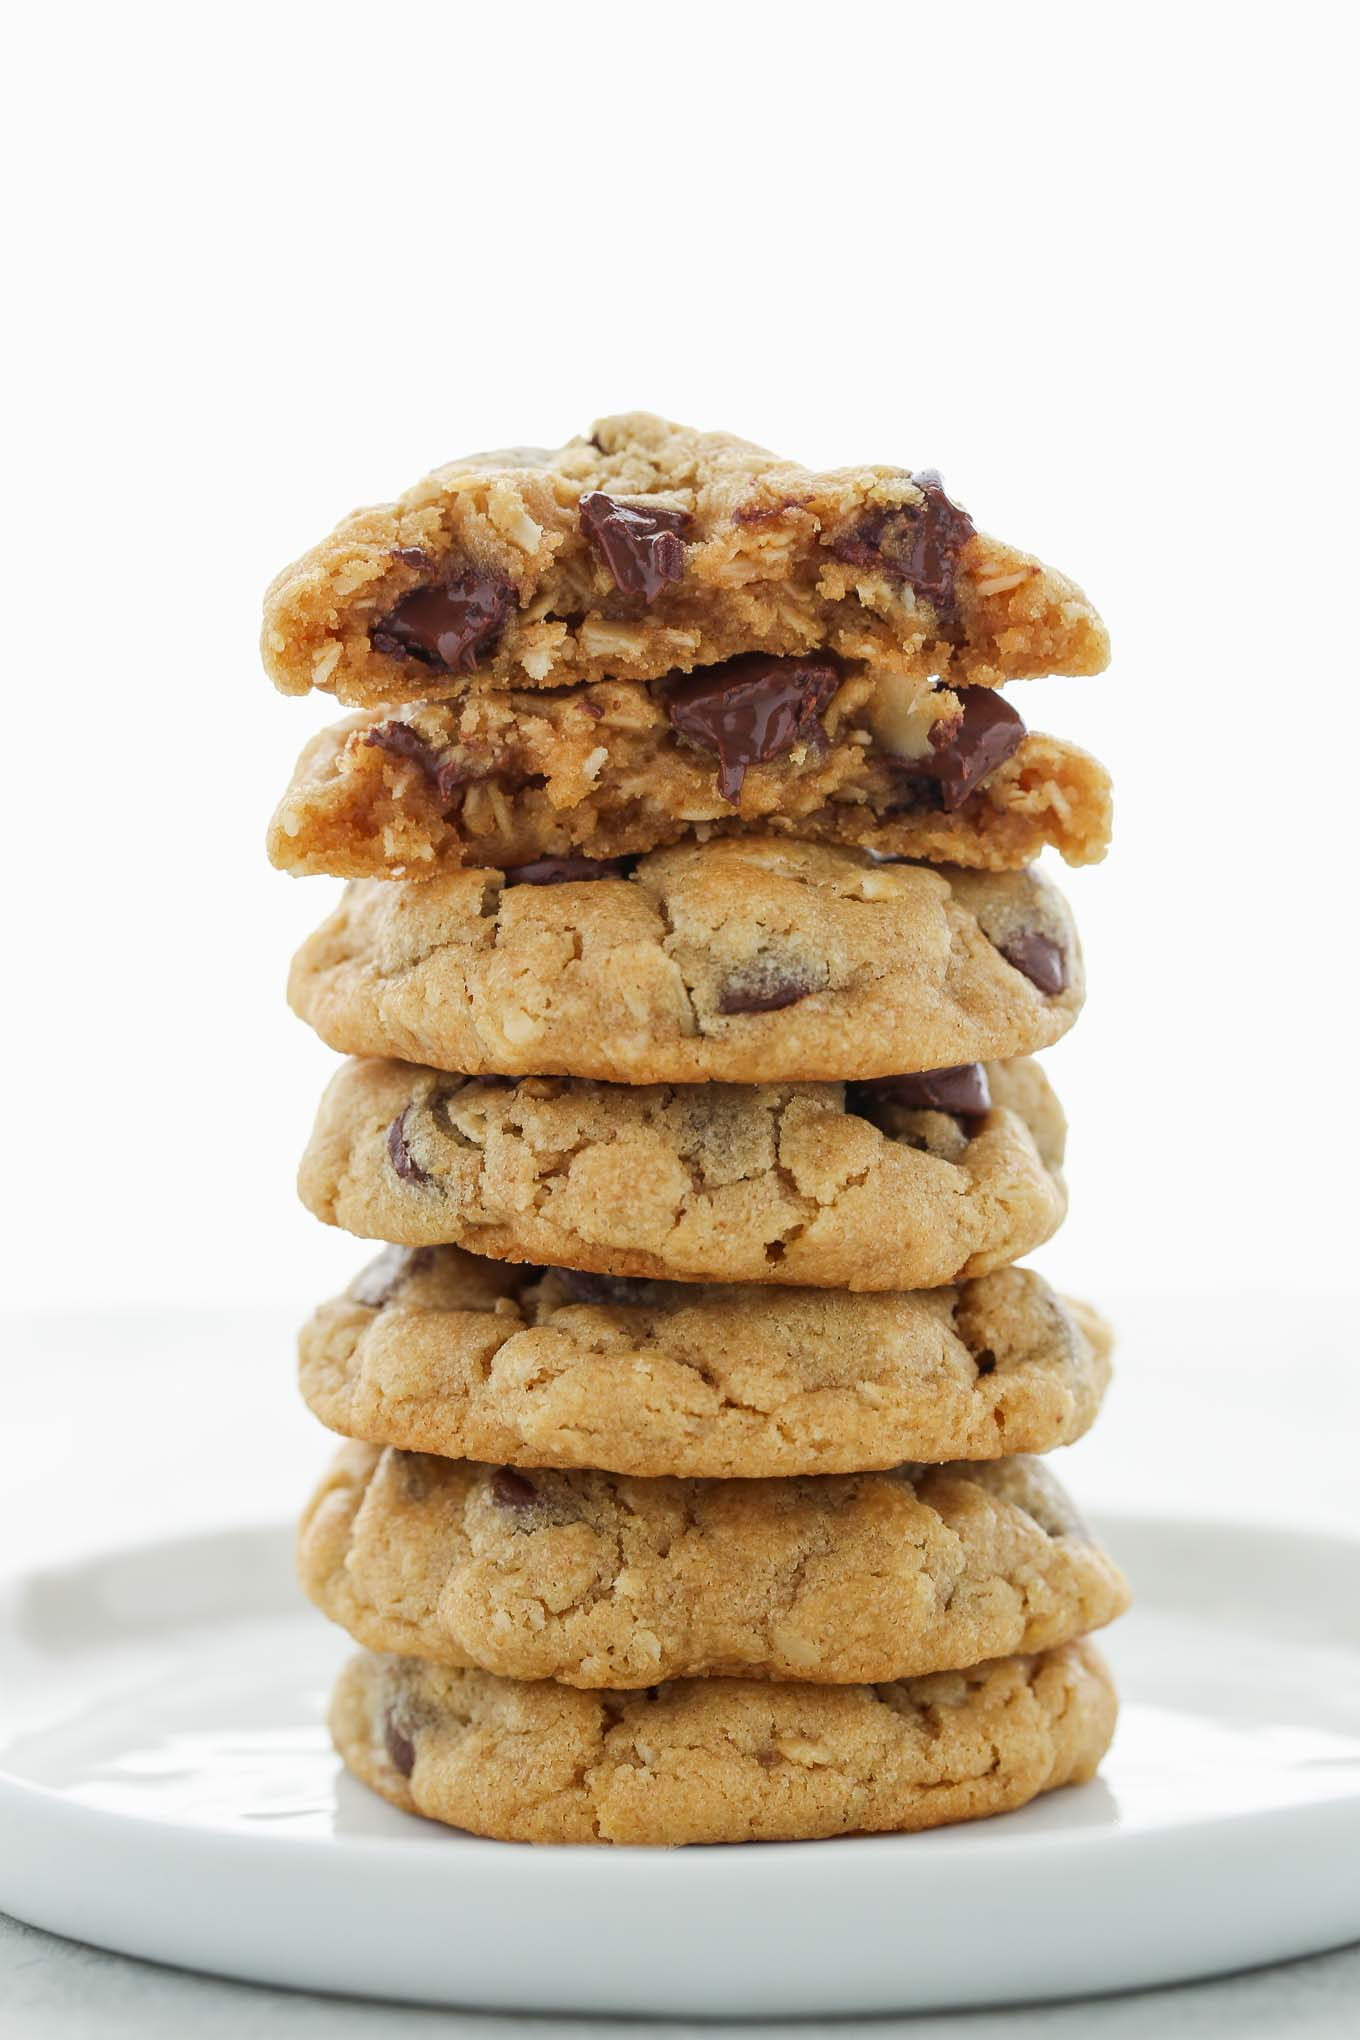 A stack of Peanut Butter Oatmeal Chocolate Chip Cookies on a white plate.